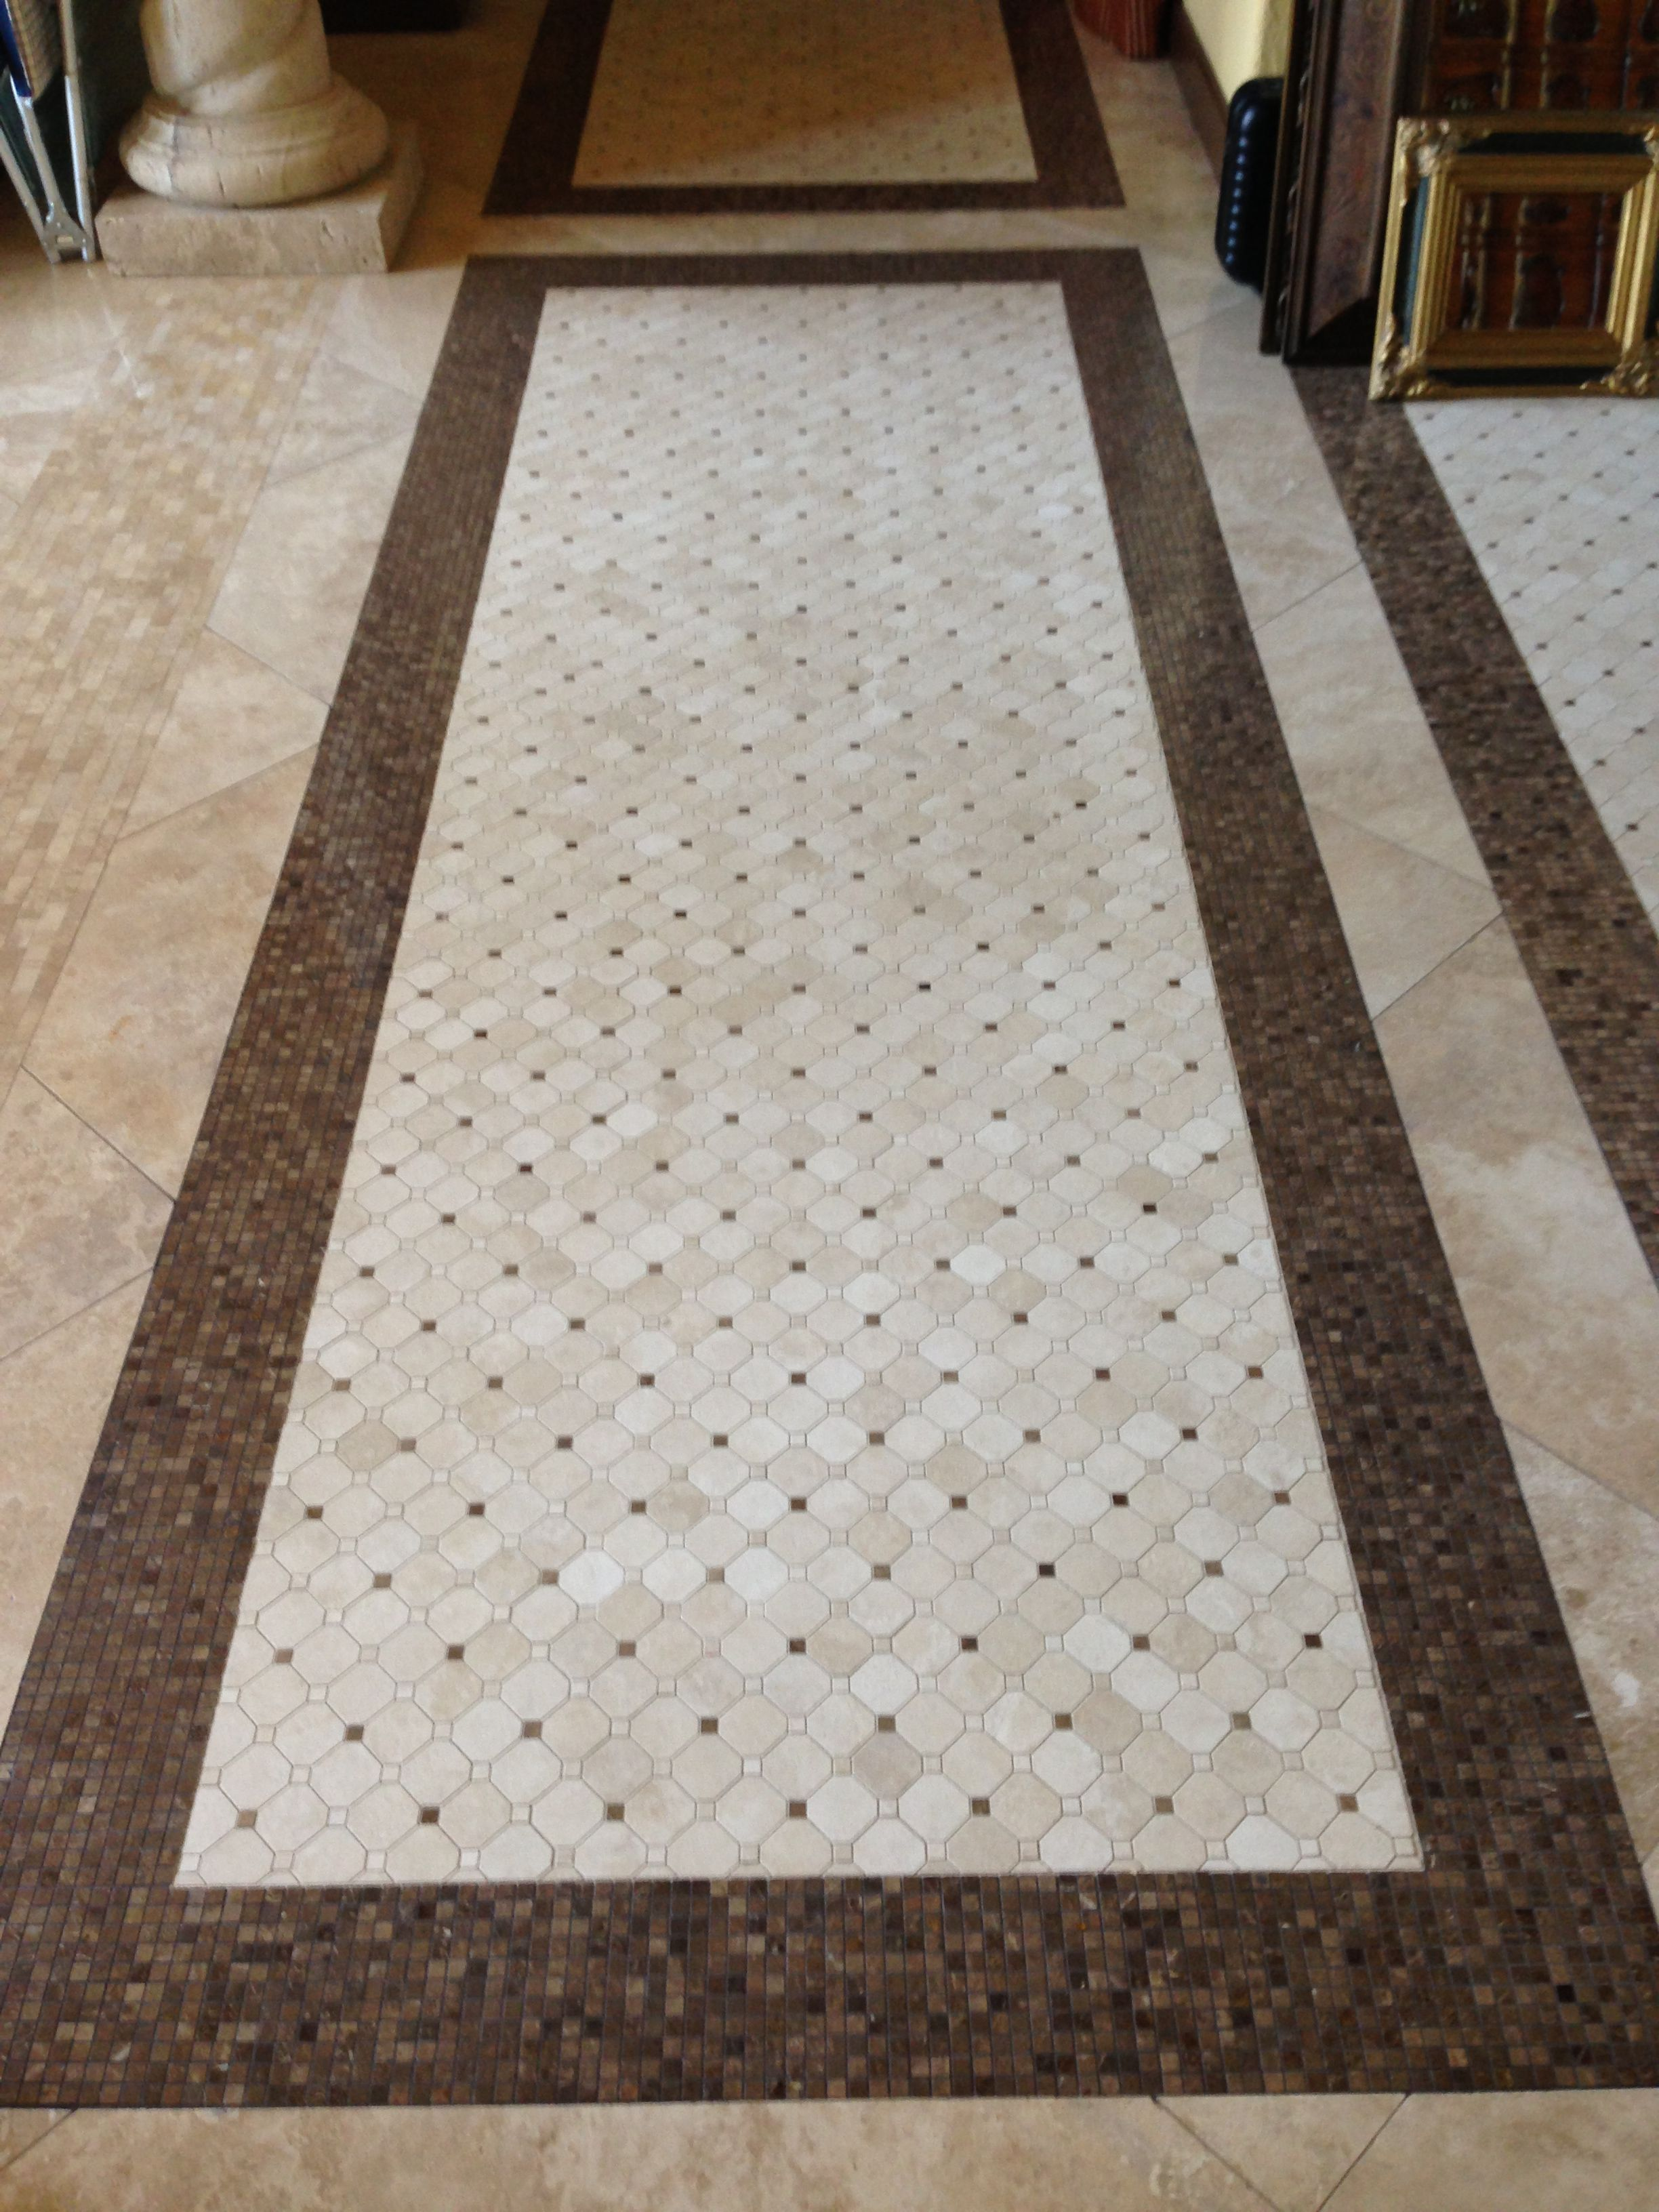 Hand laid mosaic rug work by baker flooring design tile work by baker flooring design tile custom dailygadgetfo Images